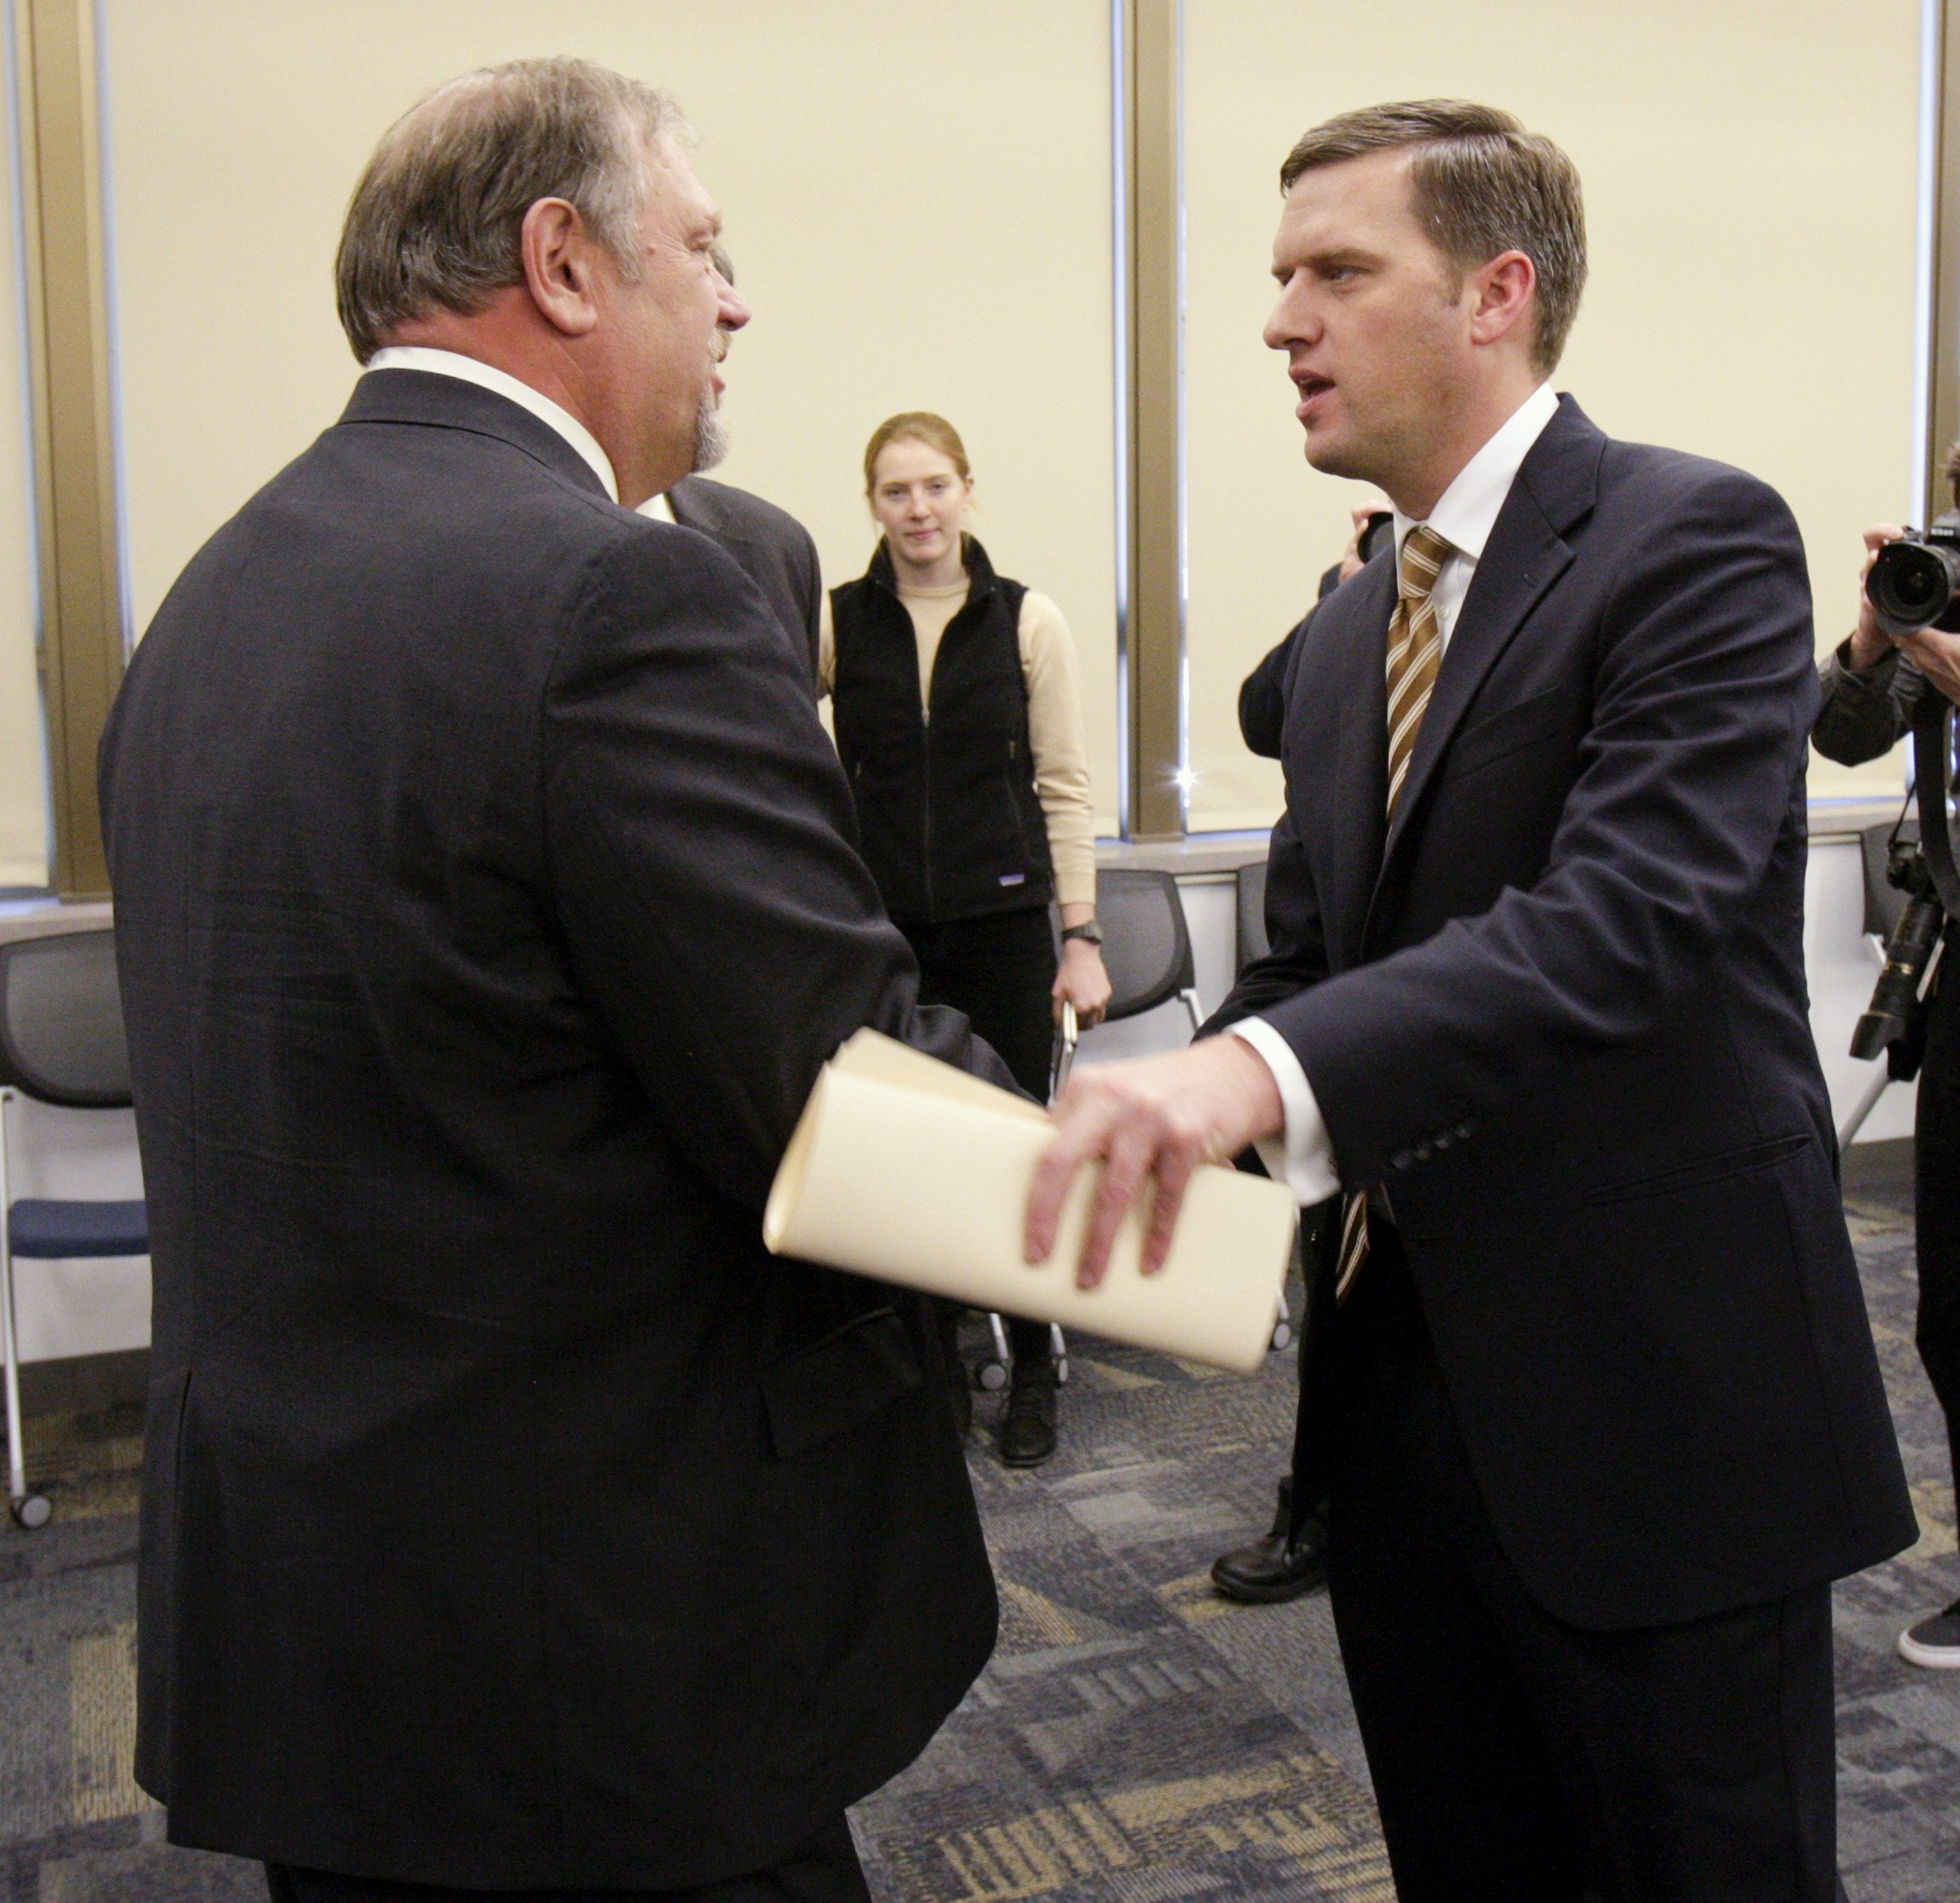 (Photo by Paul Battaglia) Senate Majority Leader Tom Bakk, left, and House Speaker-designate Kurt Daudt greet after they both made comments regarding the Dec. 4 release of the November Budget and Economic Forecast.